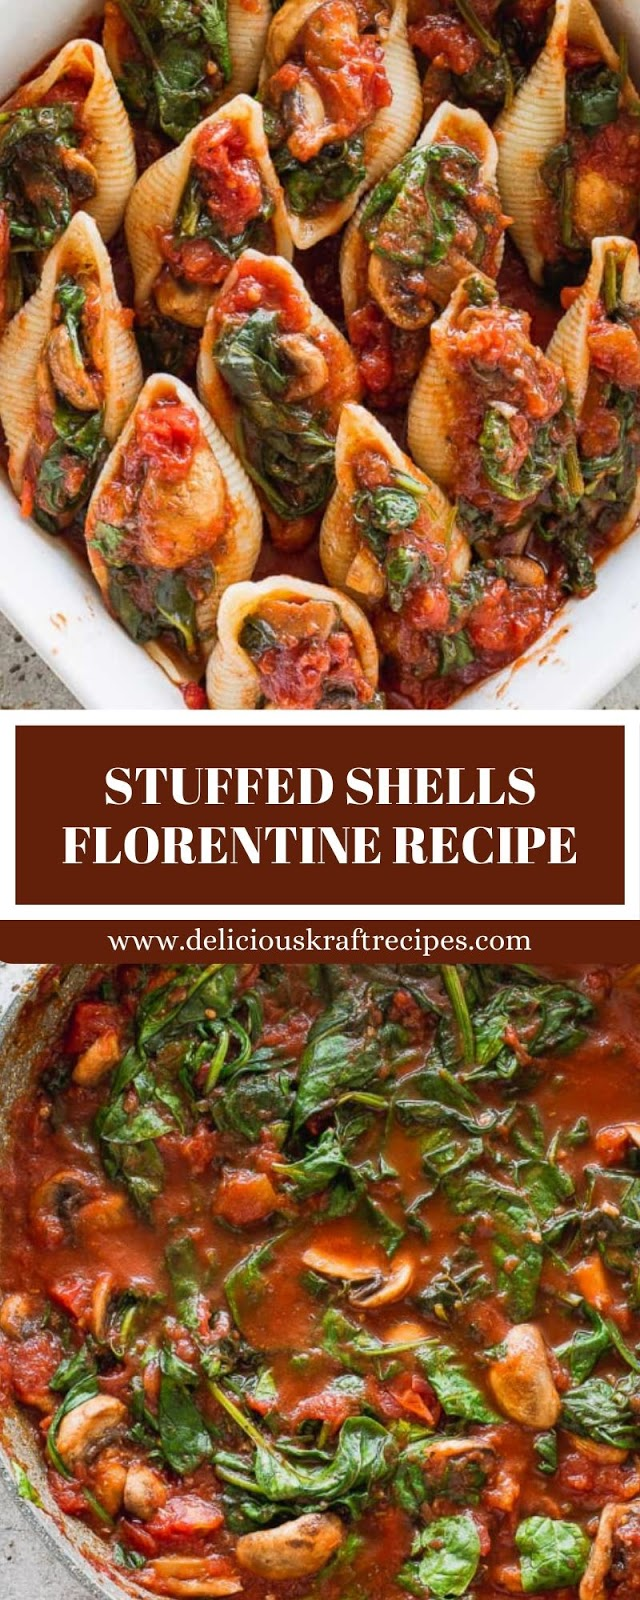 STUFFED SHELLS FLORENTINE RECIPE